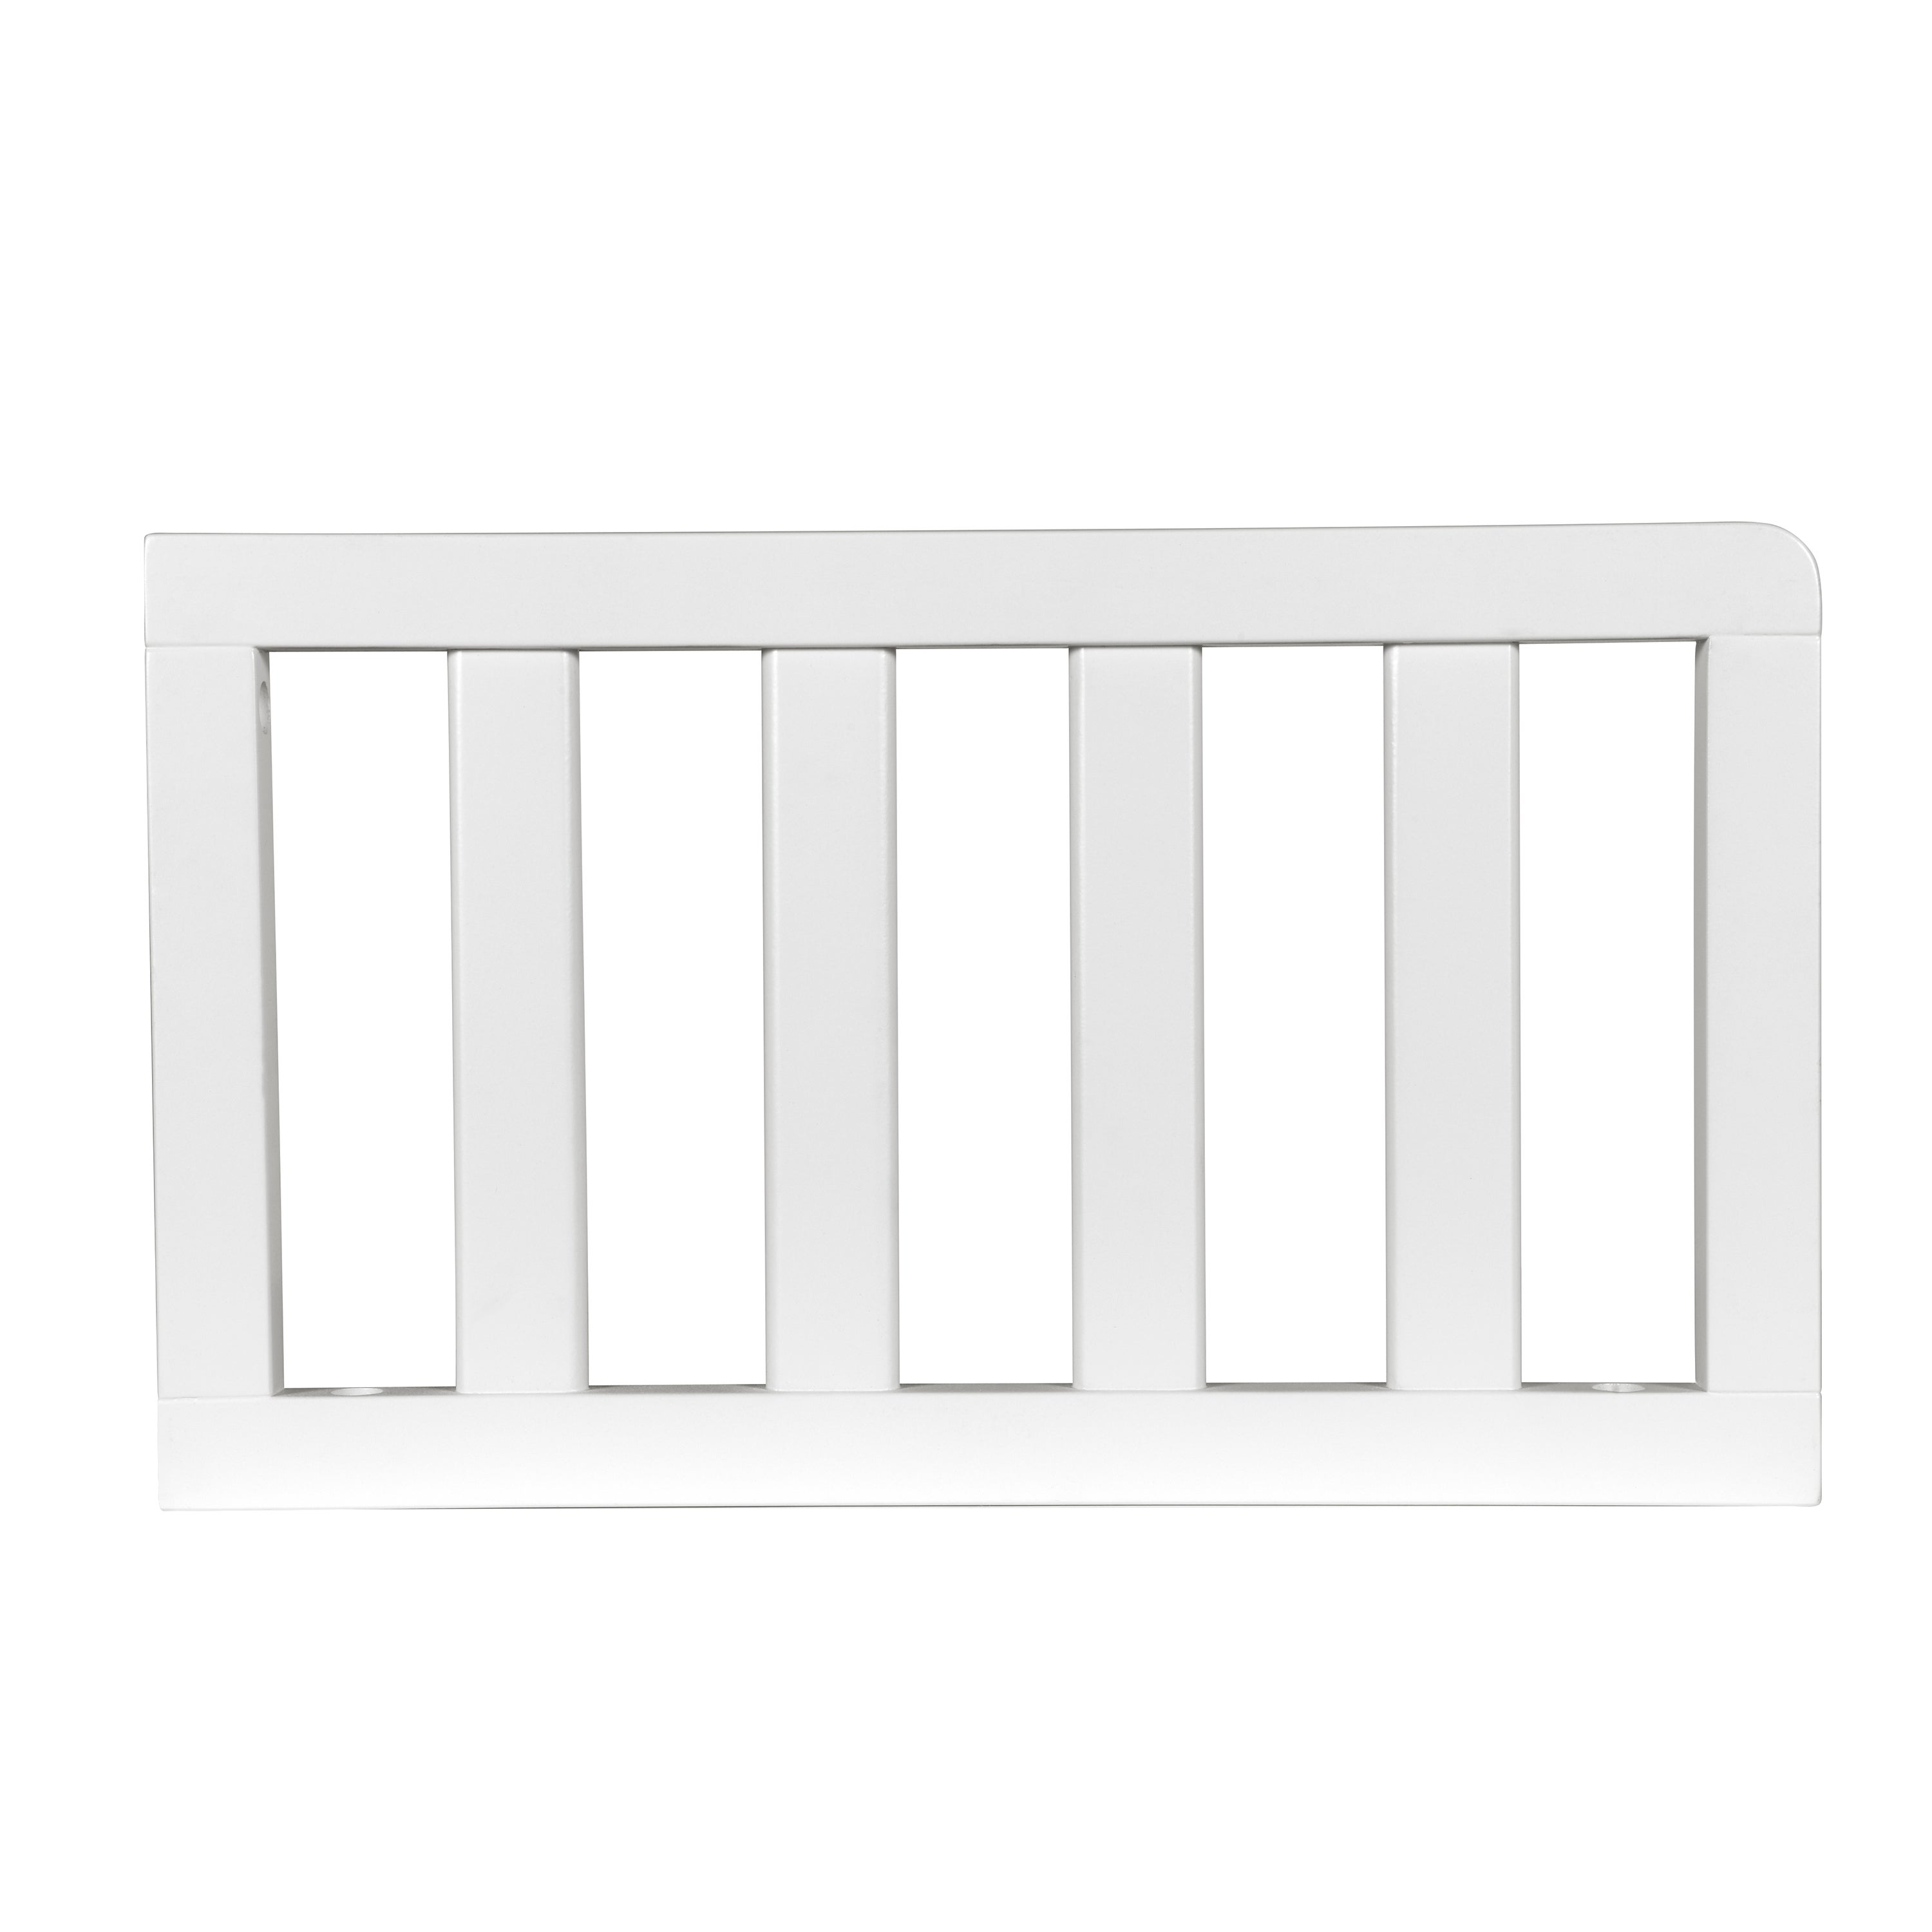 Delta Children Toddler Guardrail #0080, Bianca (Toddler G...